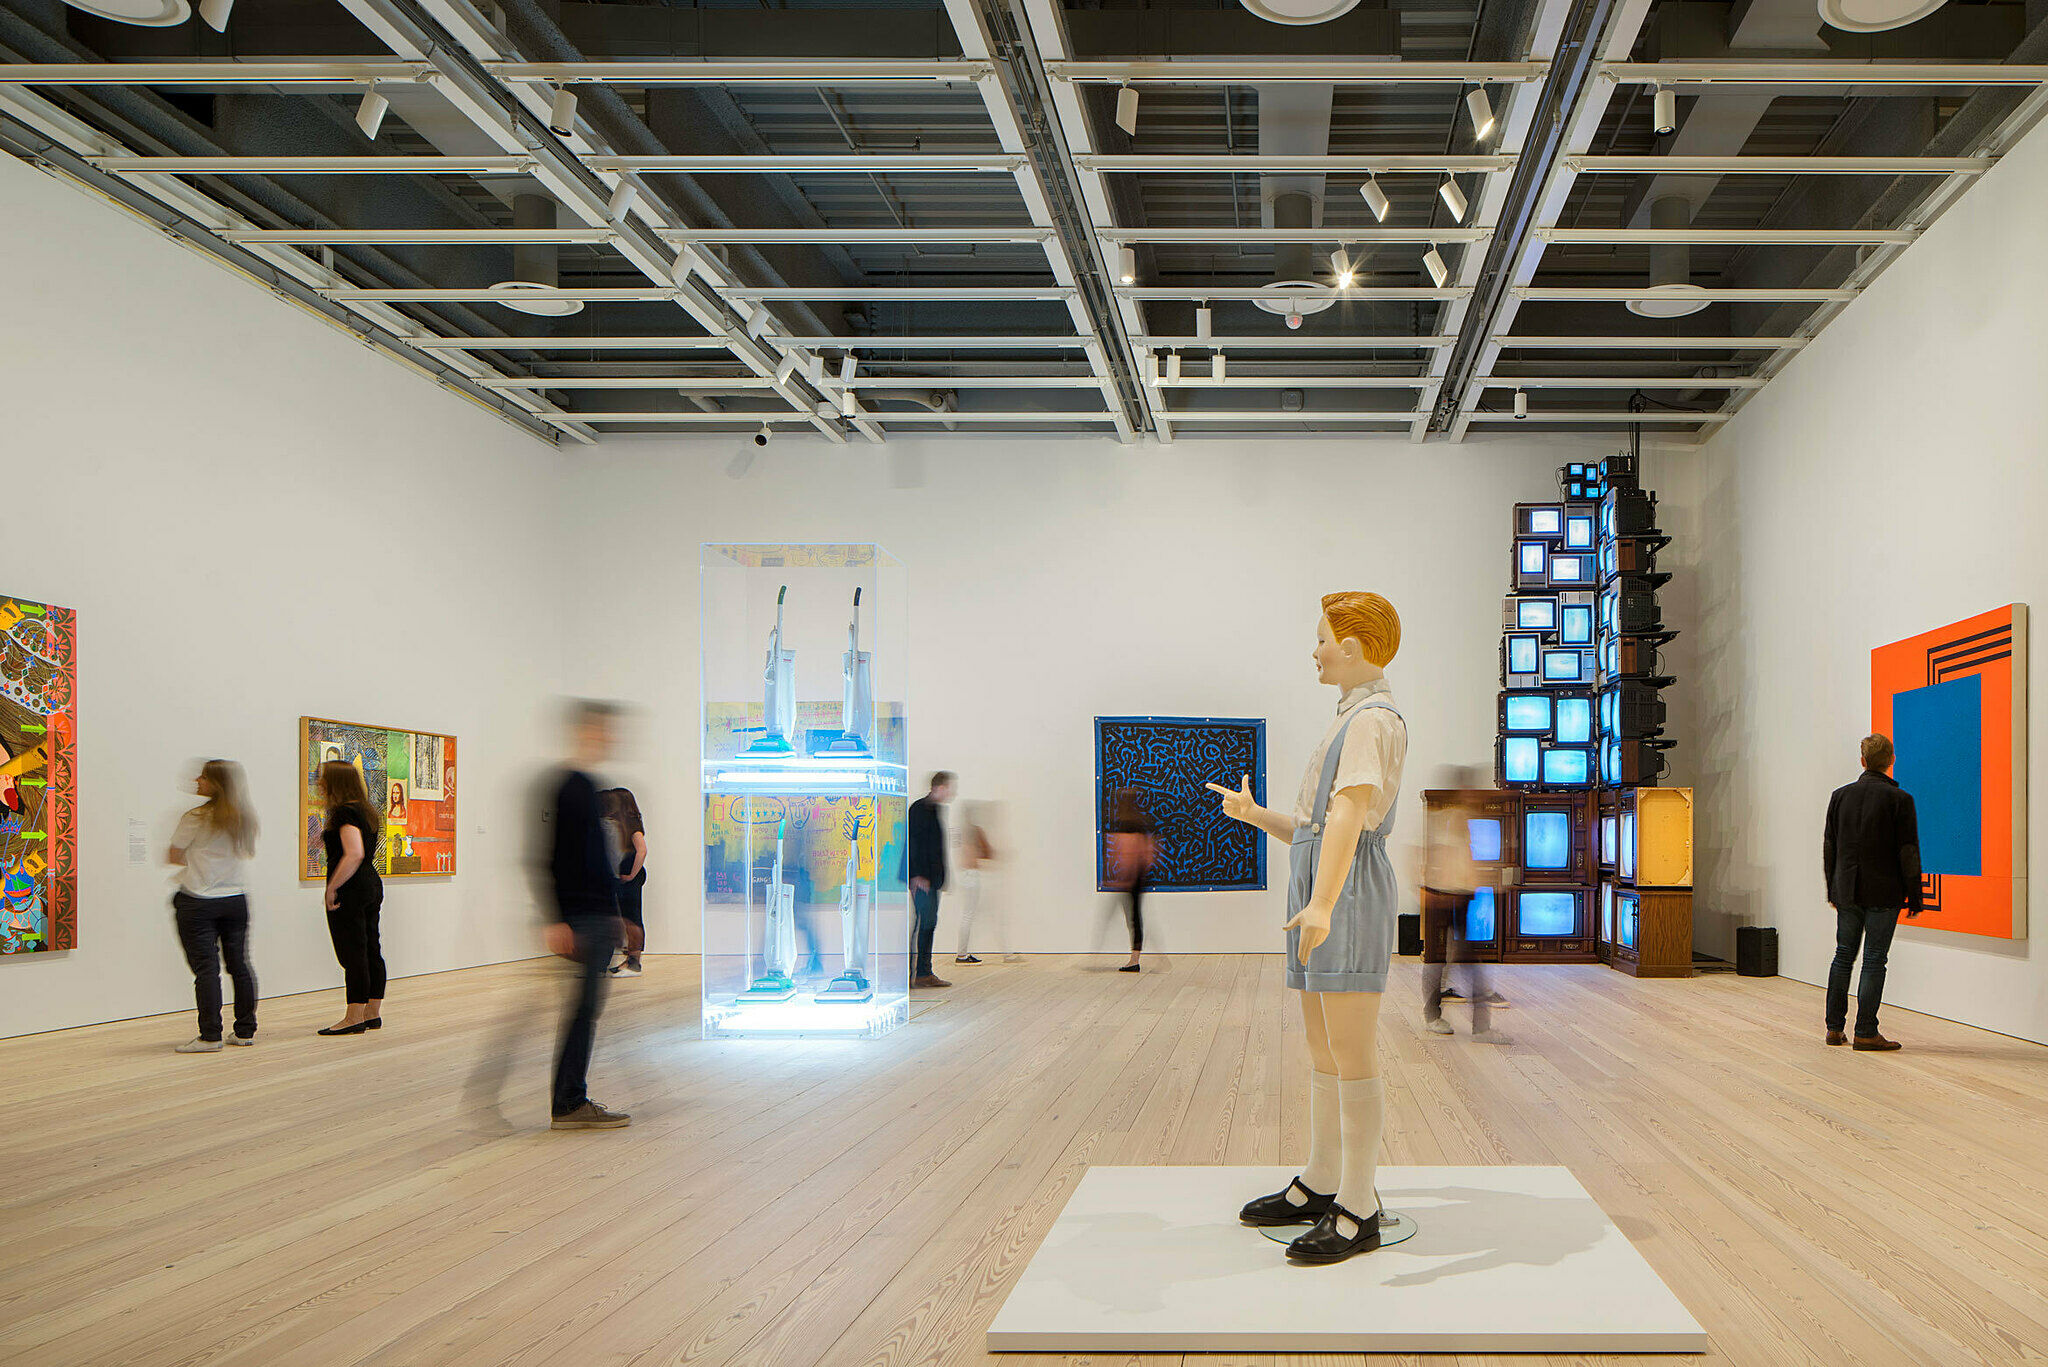 The Whitney's galleries. Sculpture and paintings fill the gallery populated by visitors